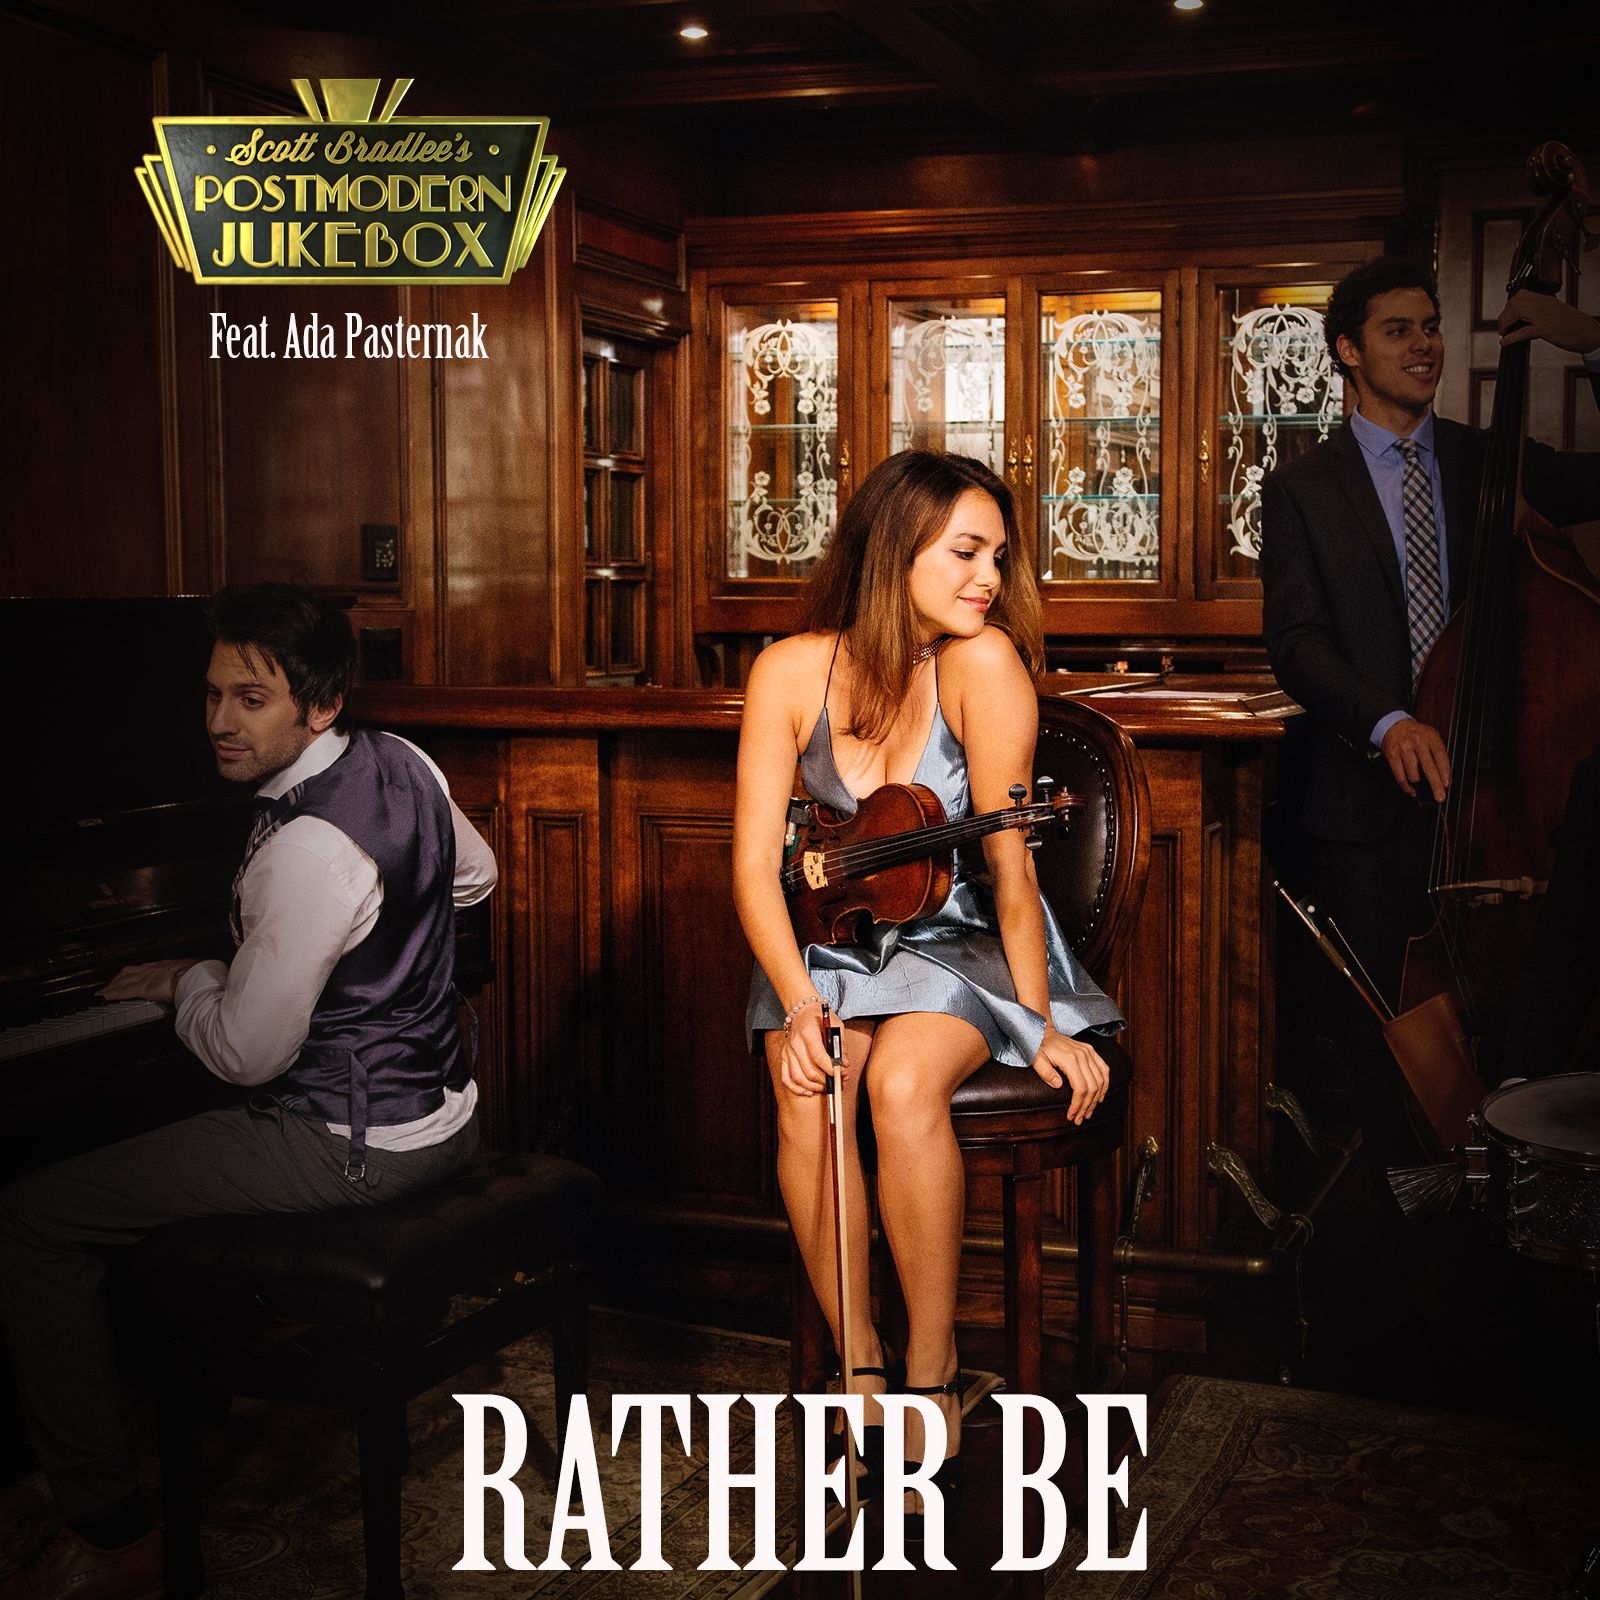 Rather Be Like You Ve Never Heard Before Western Saloon Postmodernism Jukebox